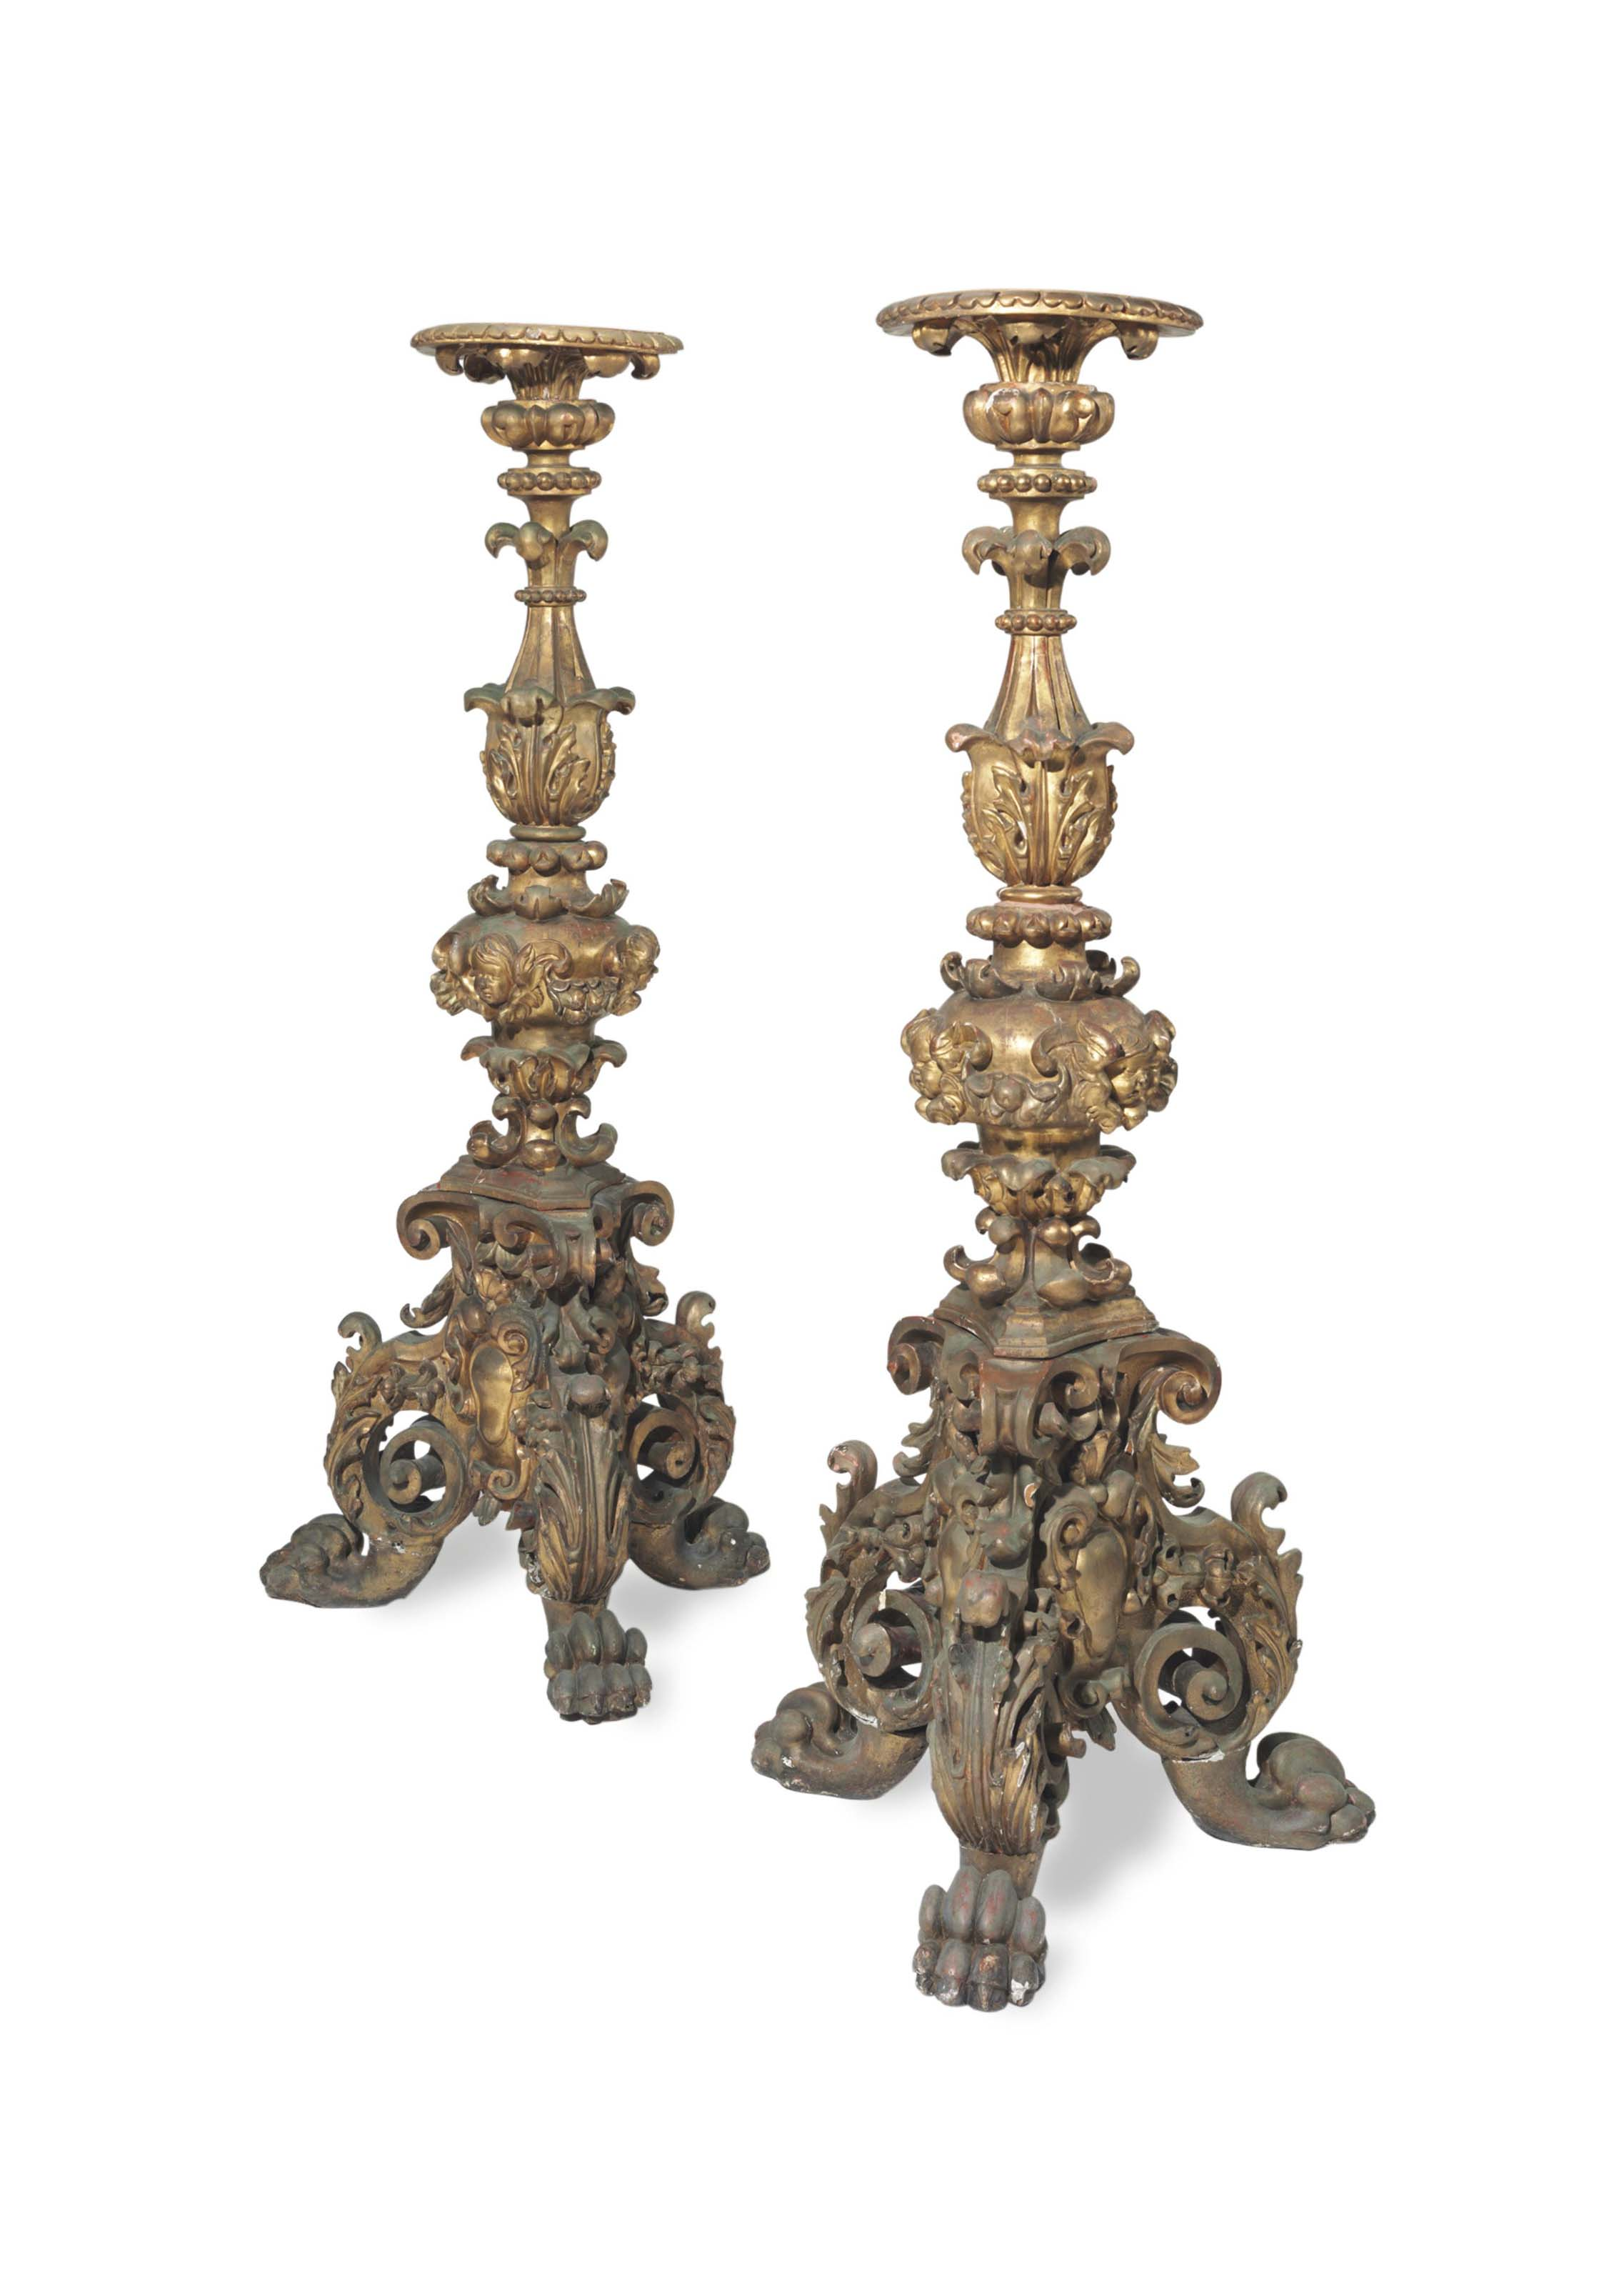 A PAIR OF BAROQUE STYLE GILTWOOD TORCHERES,